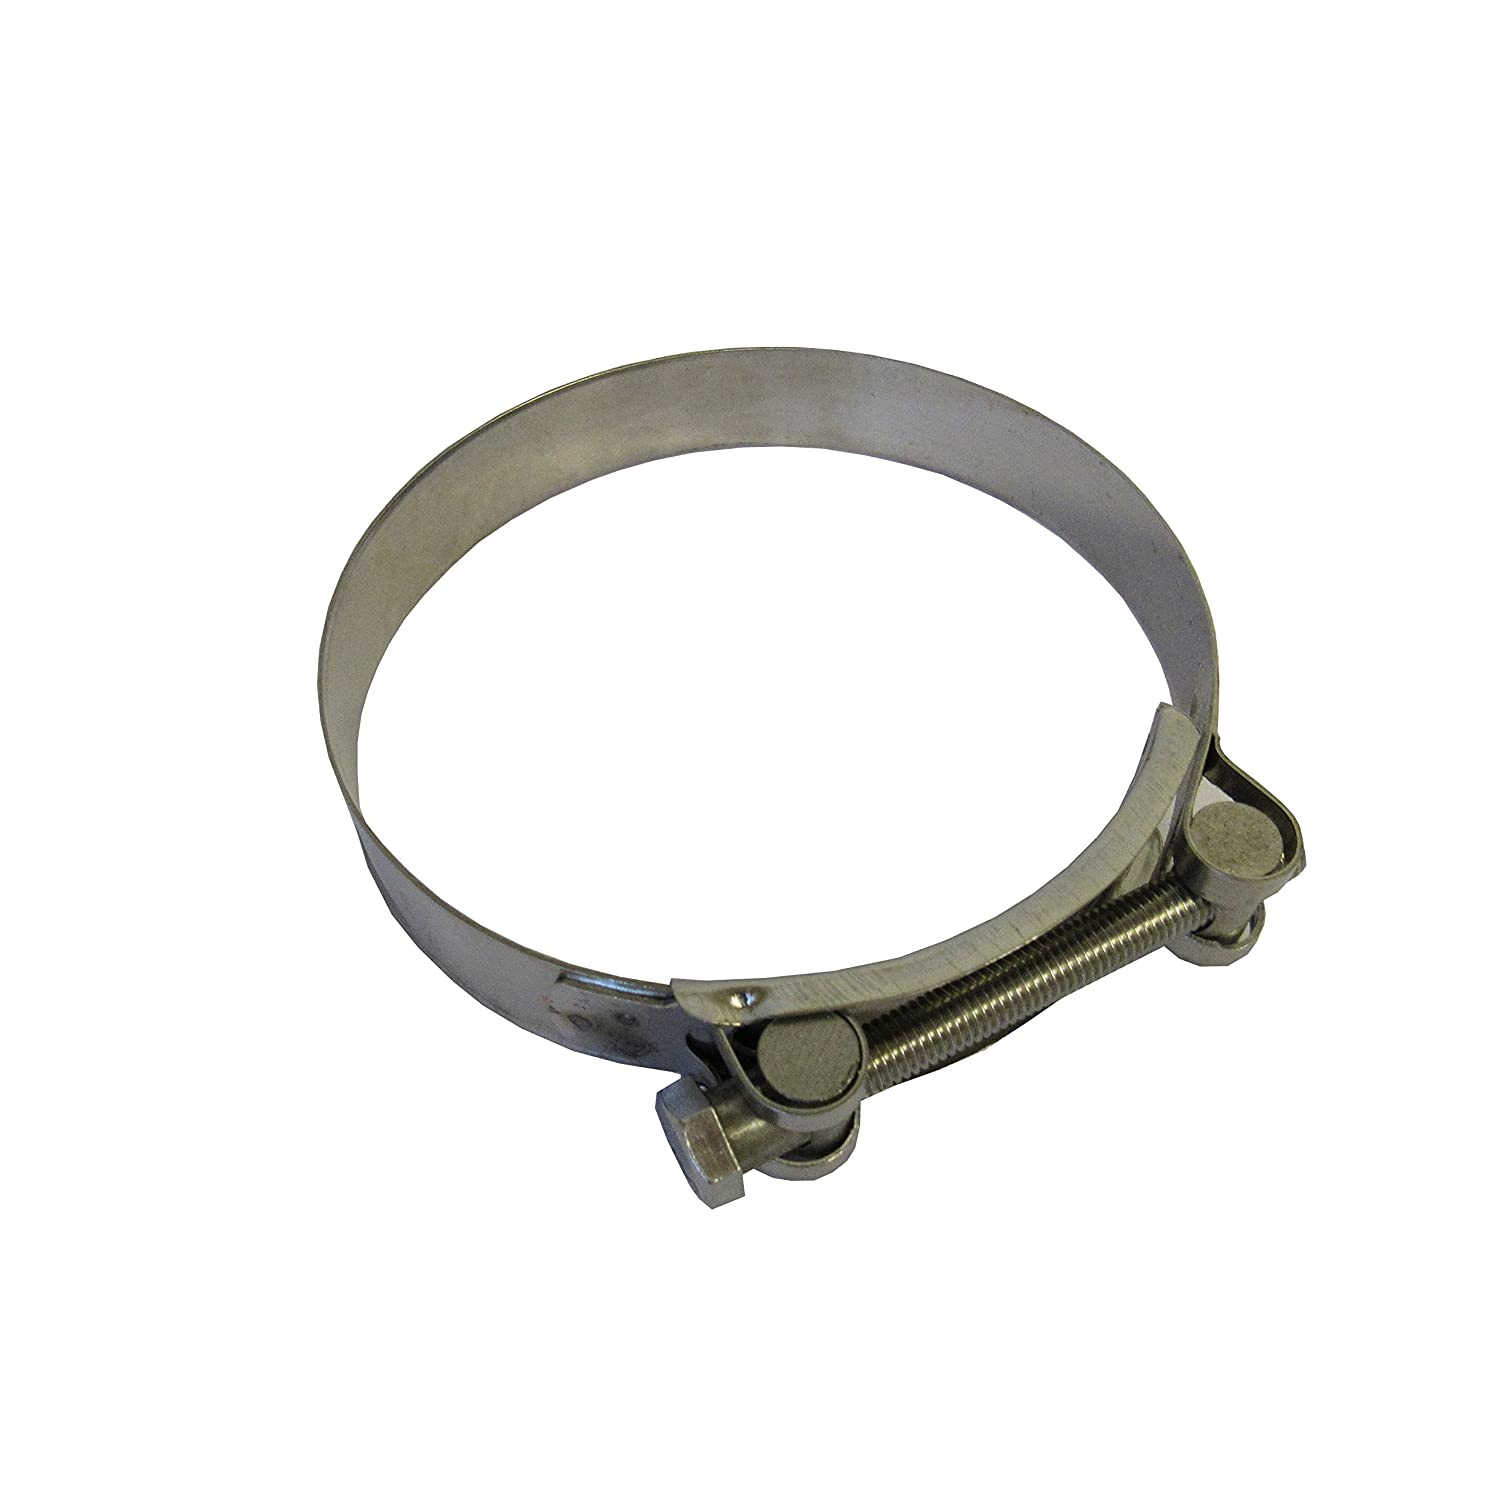 Hose Clamp, 98-103 mm (3.85 to 4.06) Heavy Duty T-Bolt Clamp, 304 Stainless Steel (Pack of 2)